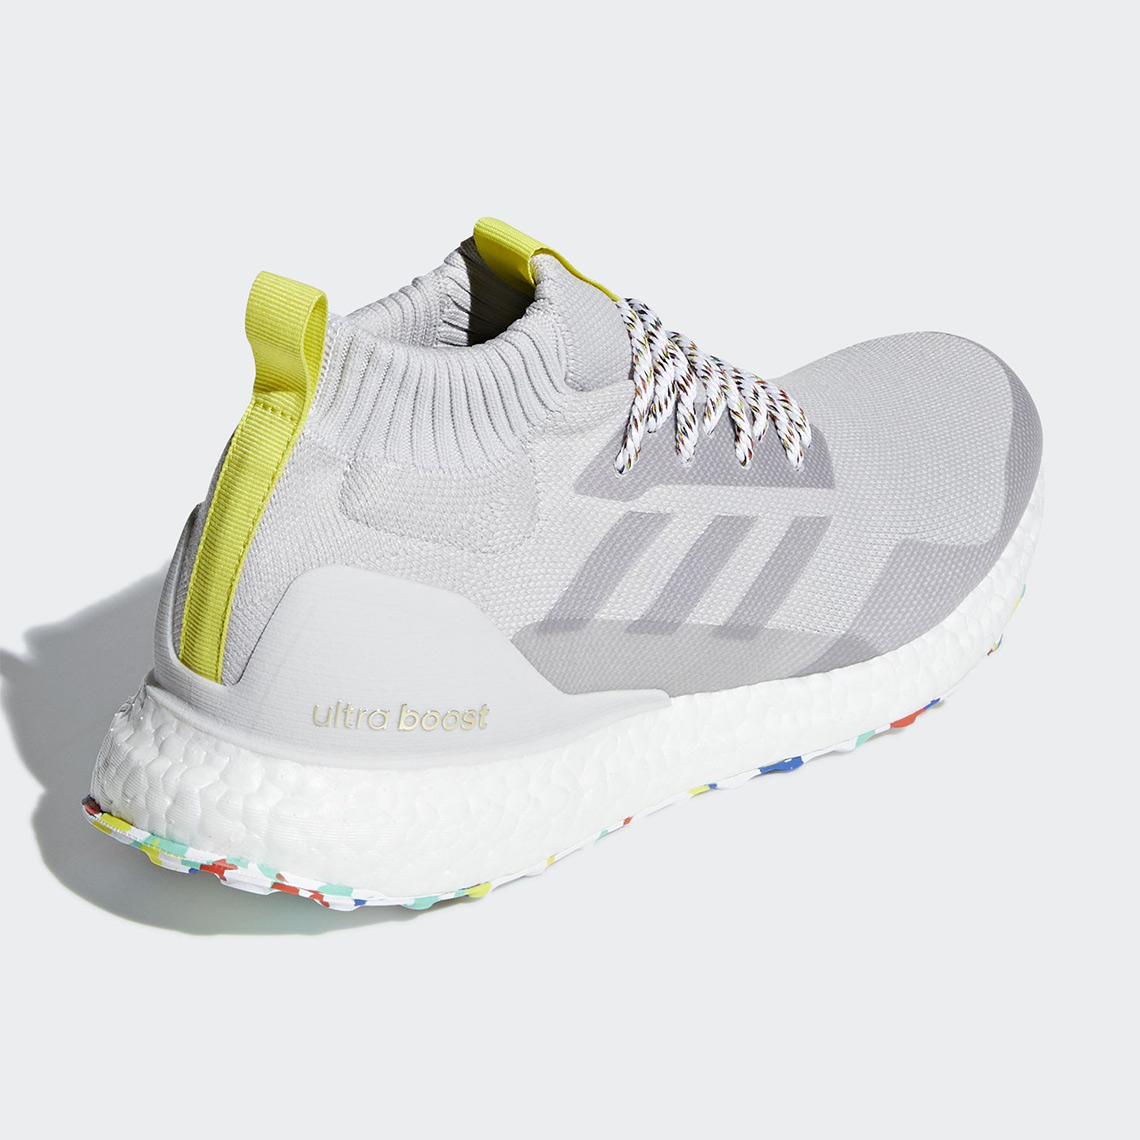 Adidas Ultra Sneakernews Mid Boost G26842 com G26841